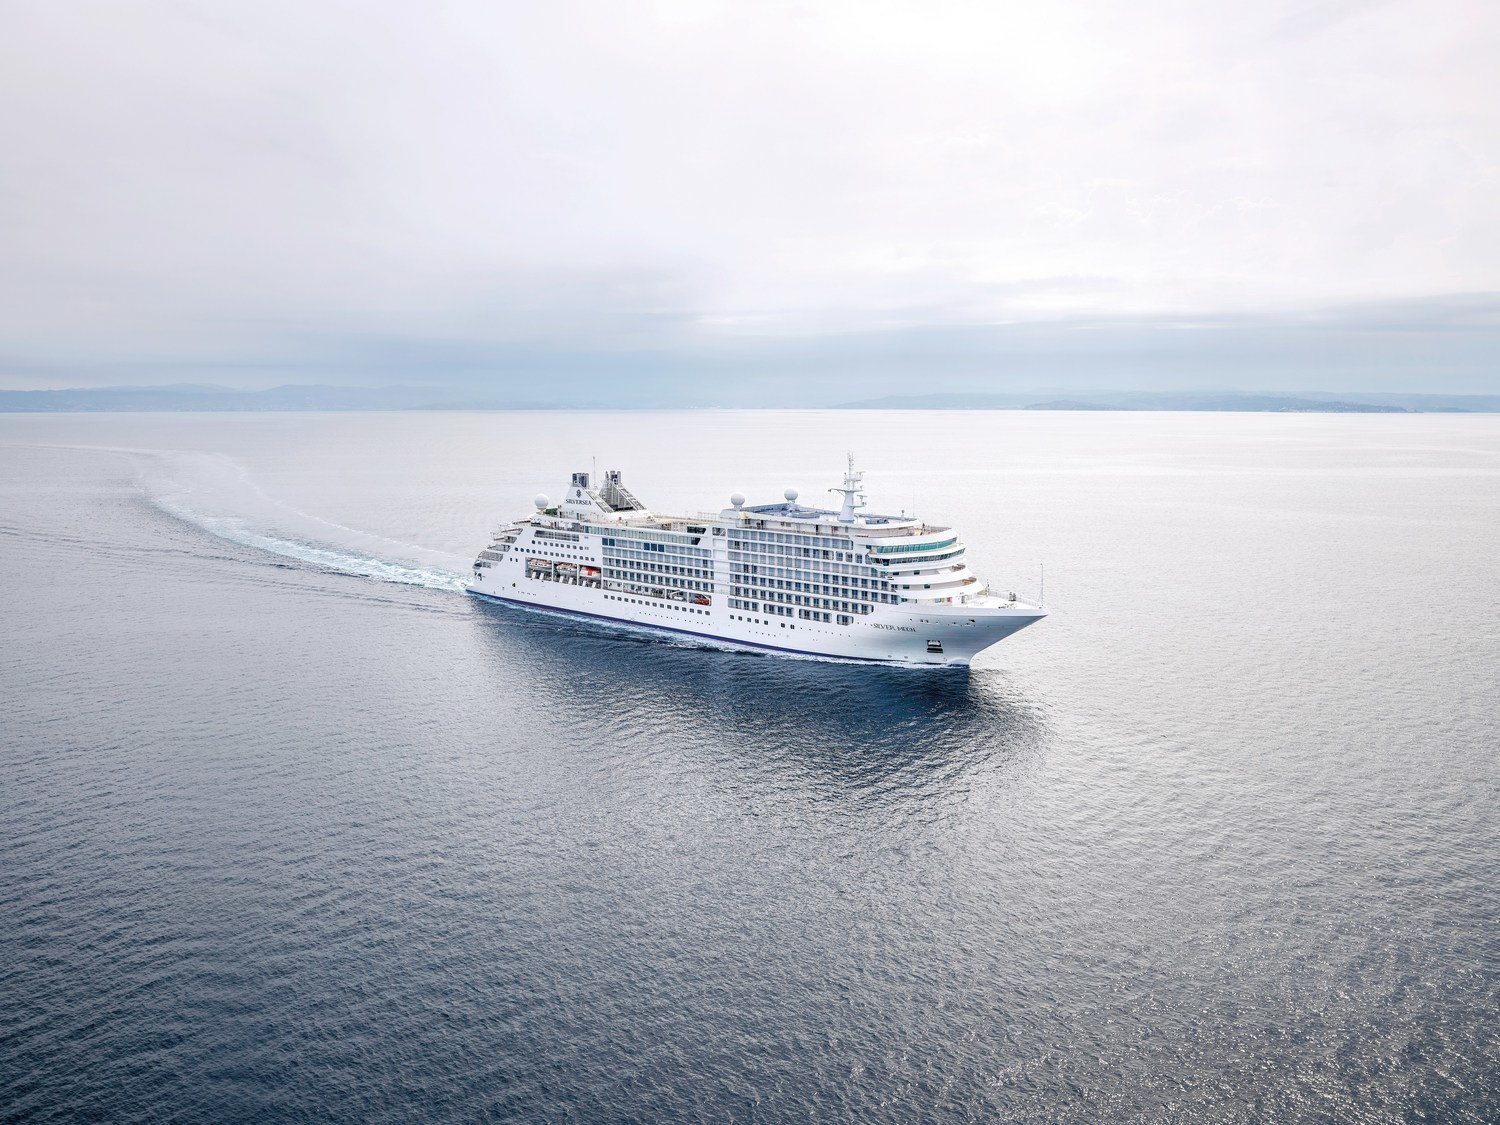 Newest cruise ship of Silversea completed its sea trials